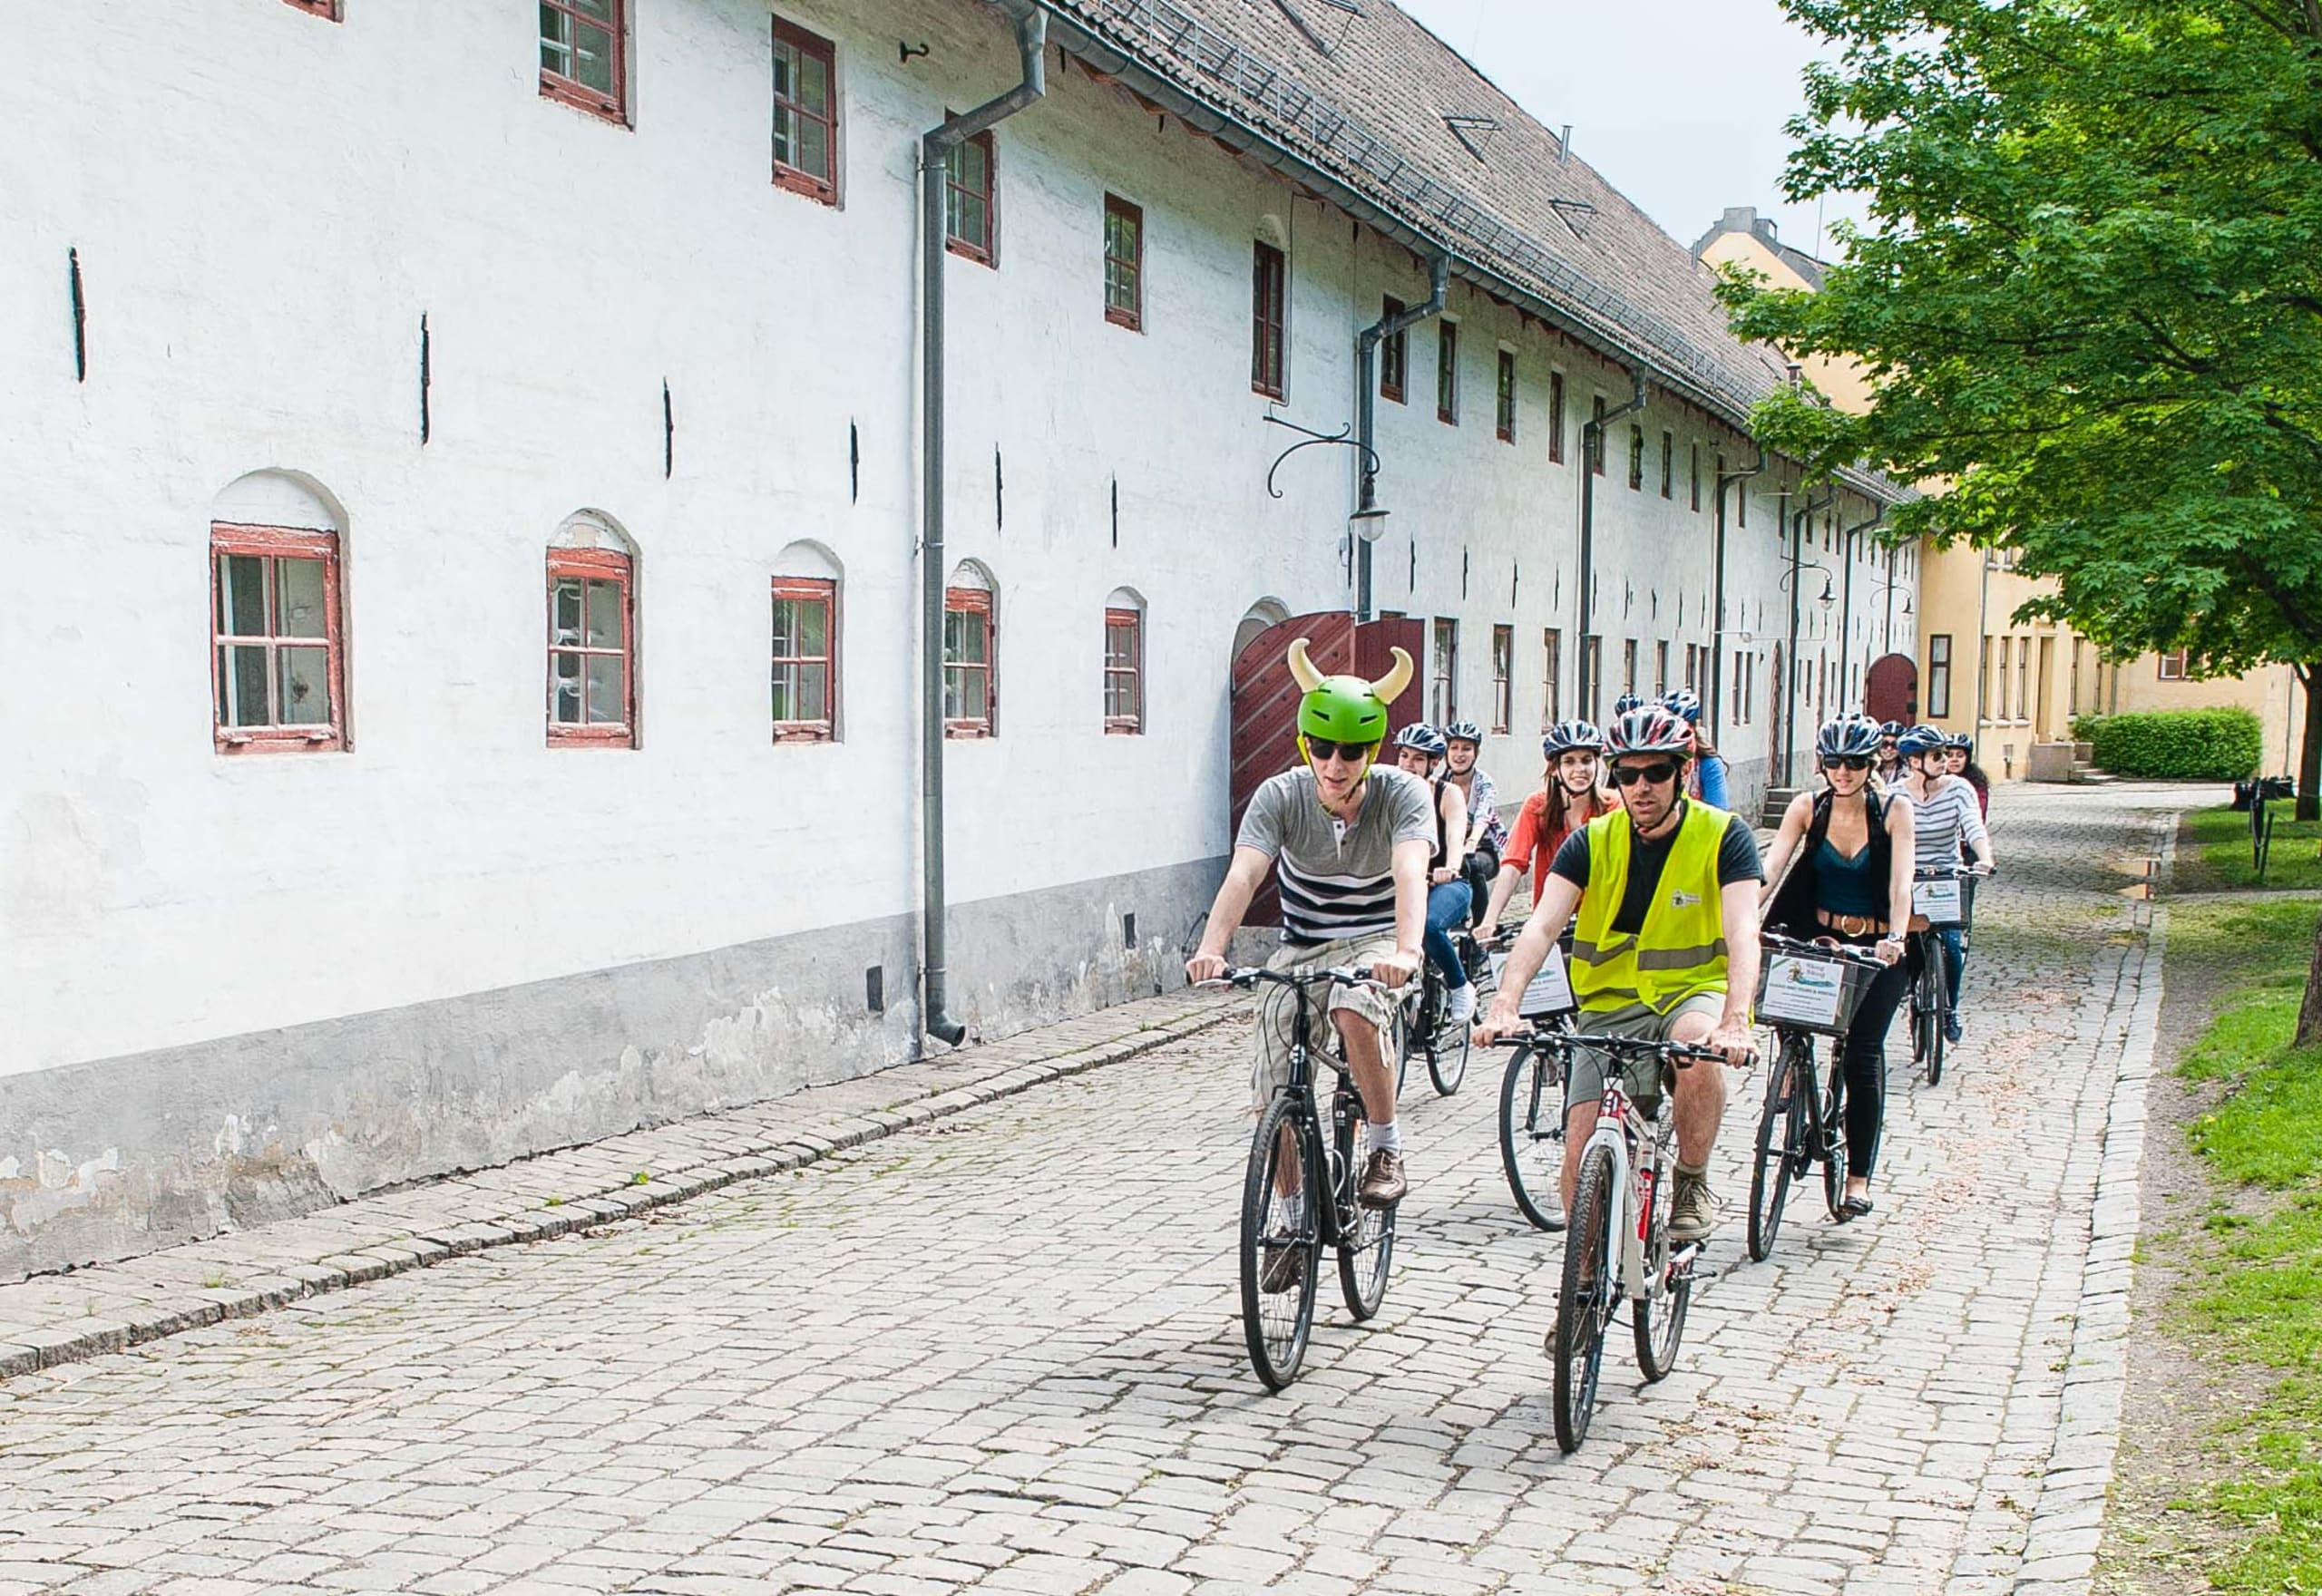 A group of tourists exploring historical sites in Oslo by bike.